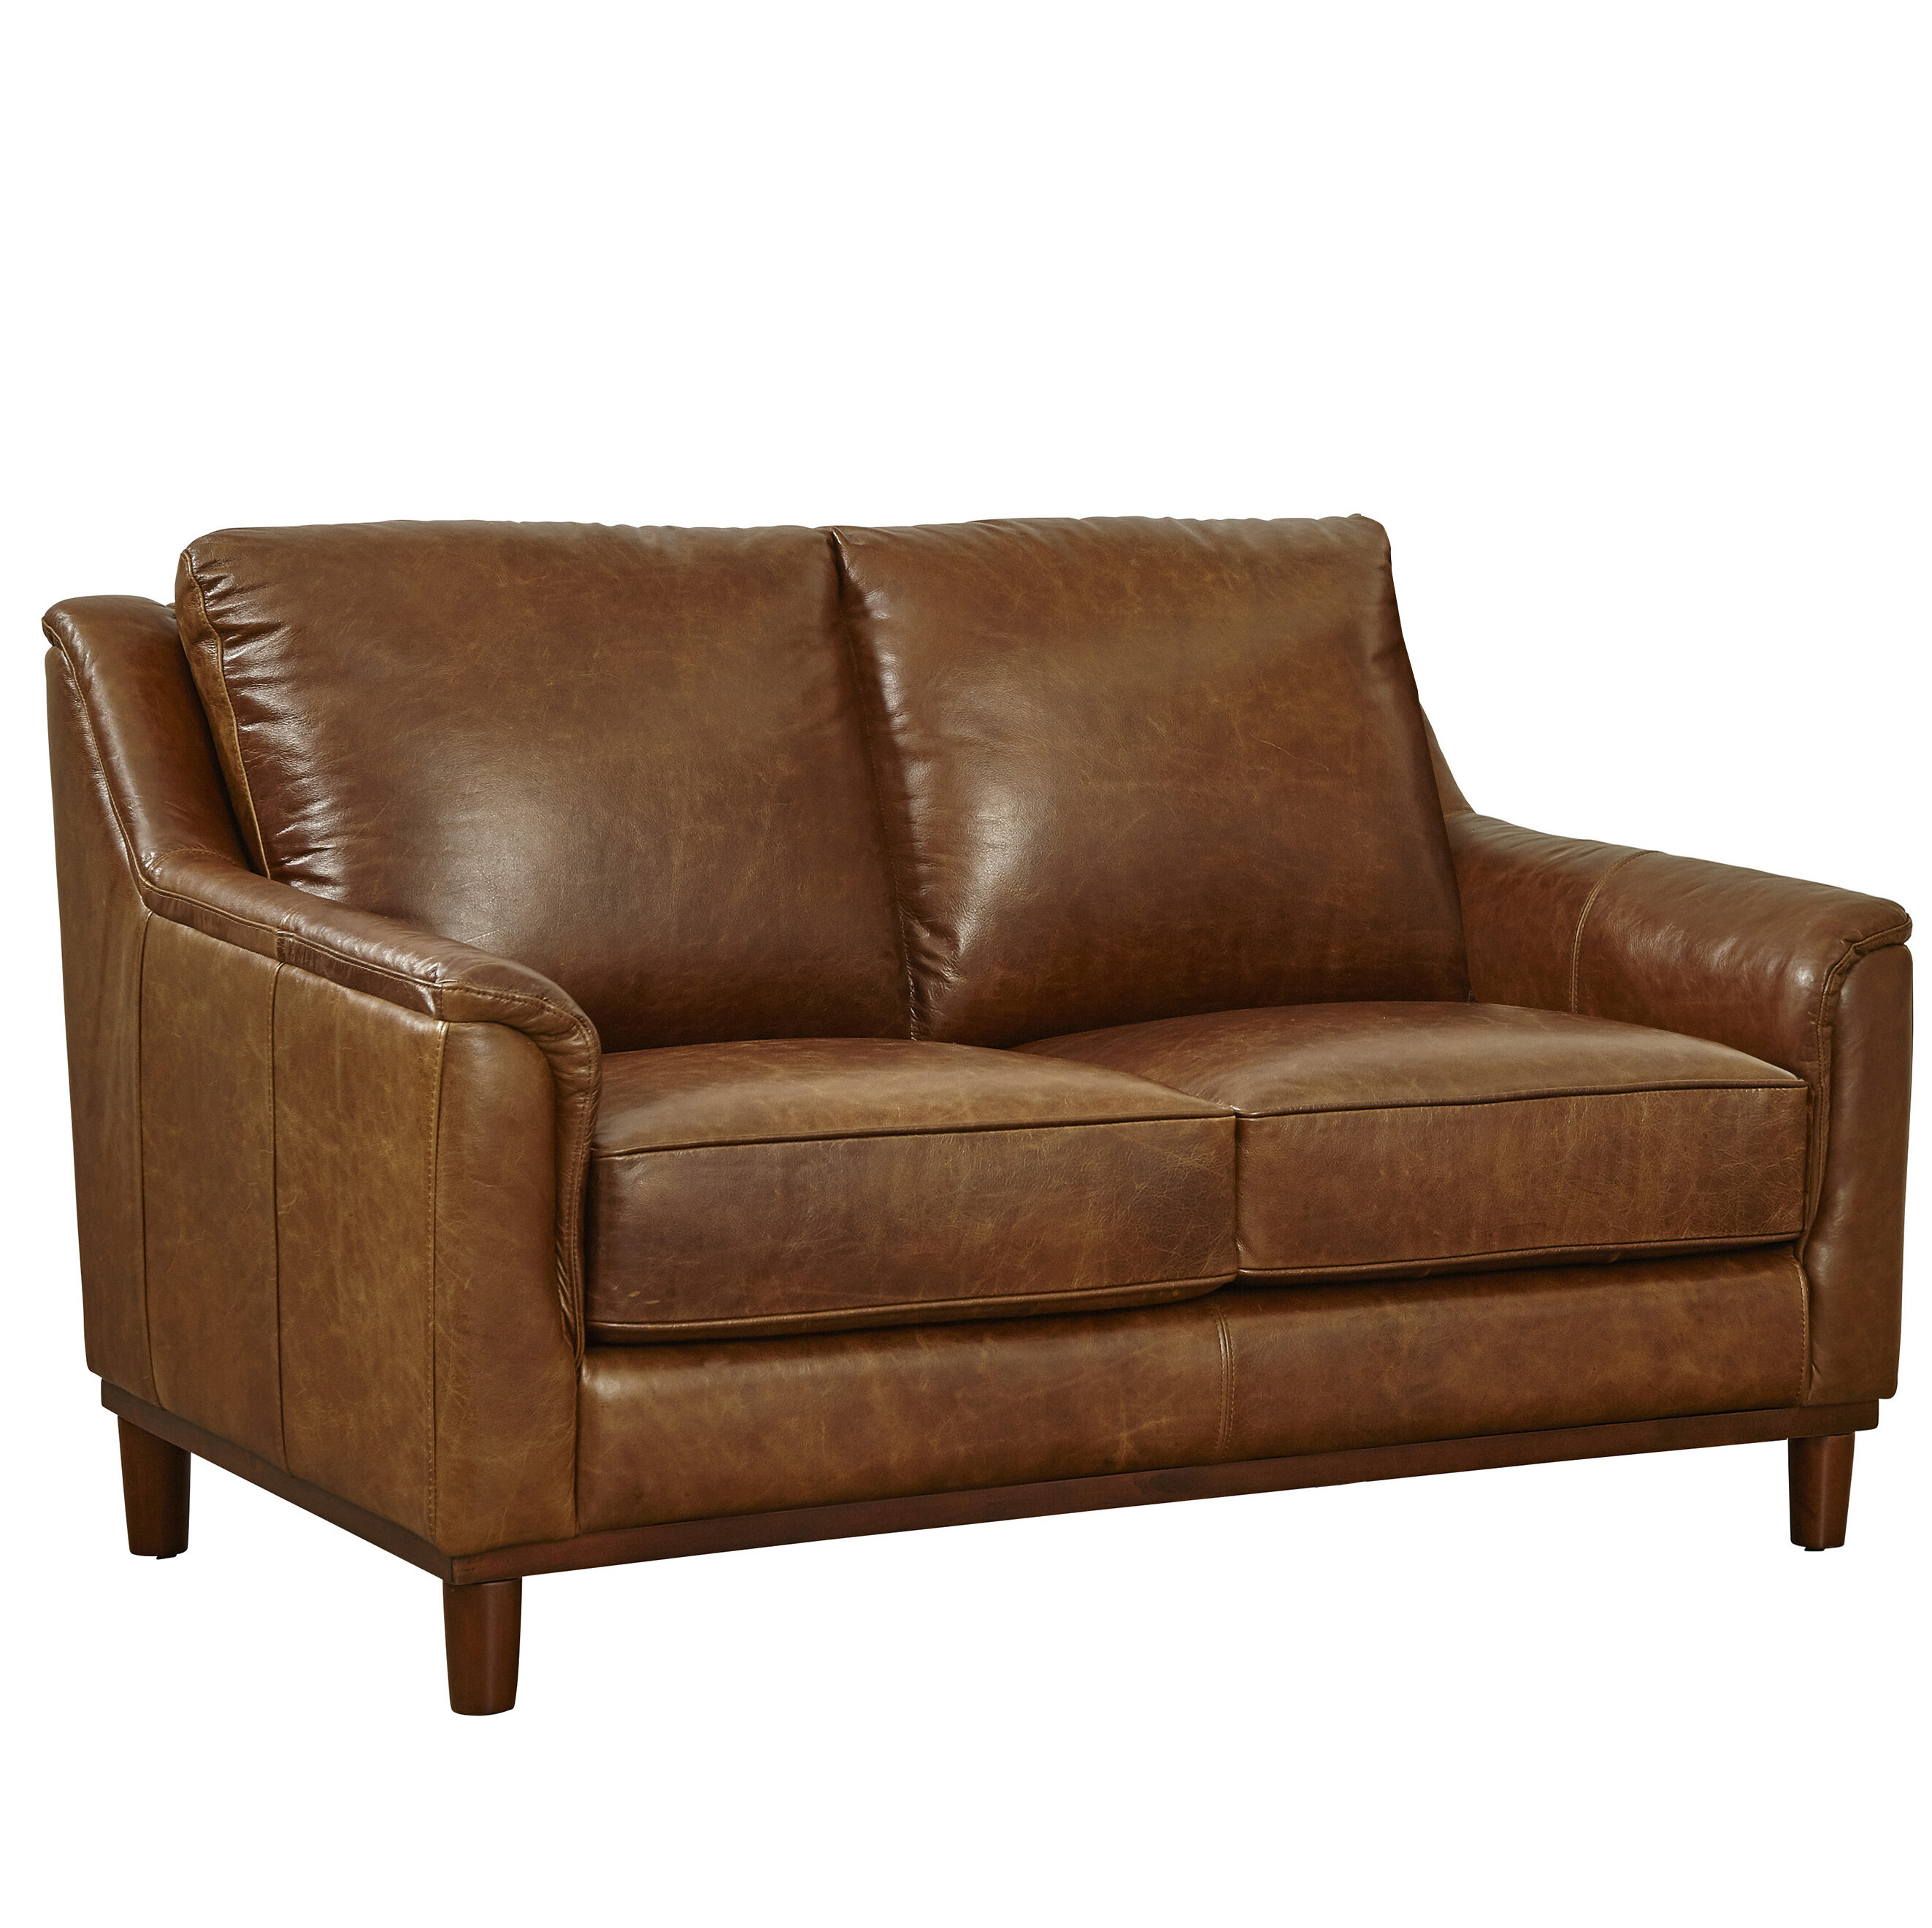 Loon Peak Knowles Leather Loveseat | Wayfair